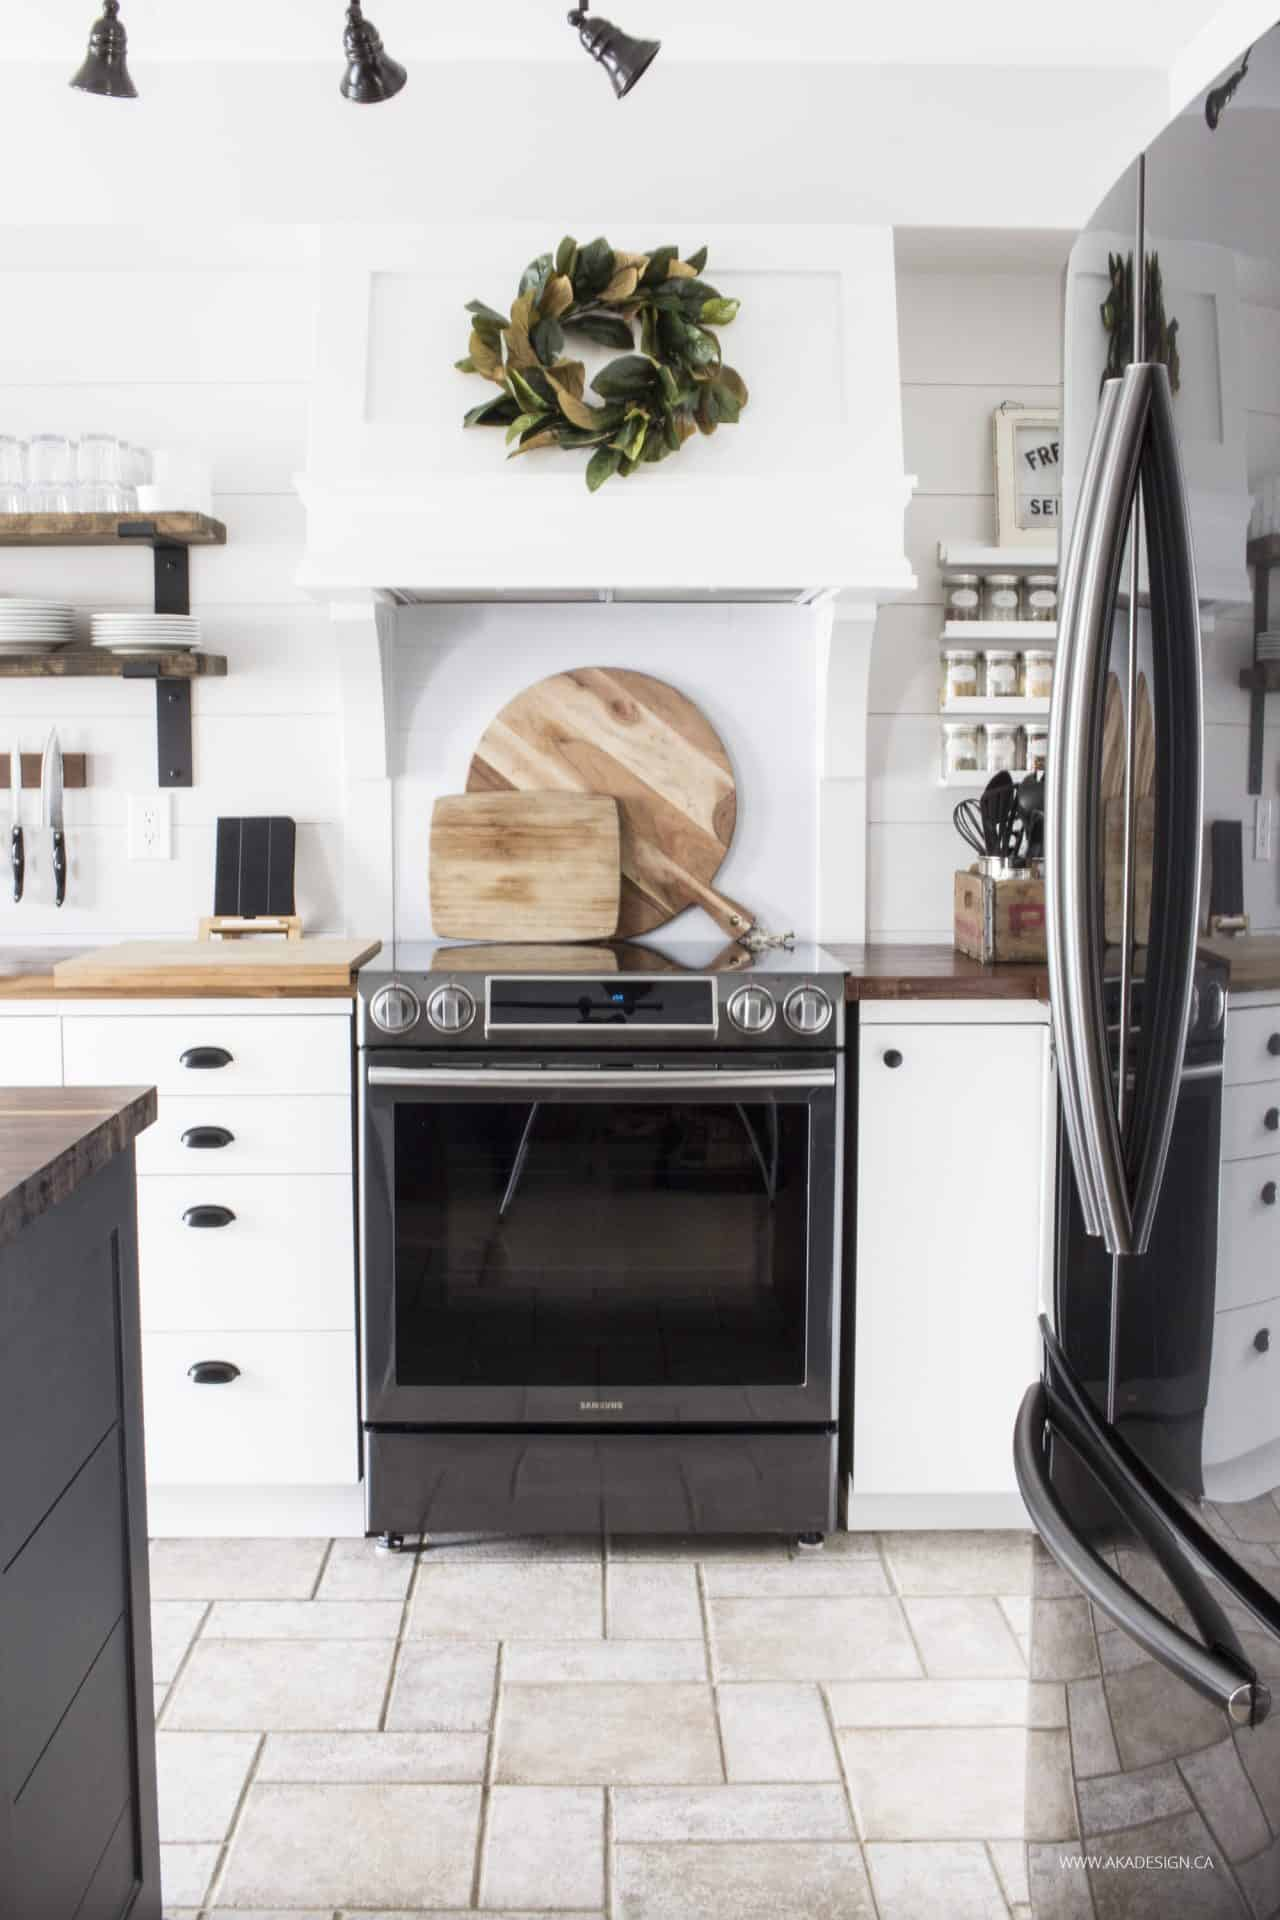 Our New Black Stainless Steel Appliances Features We Adore